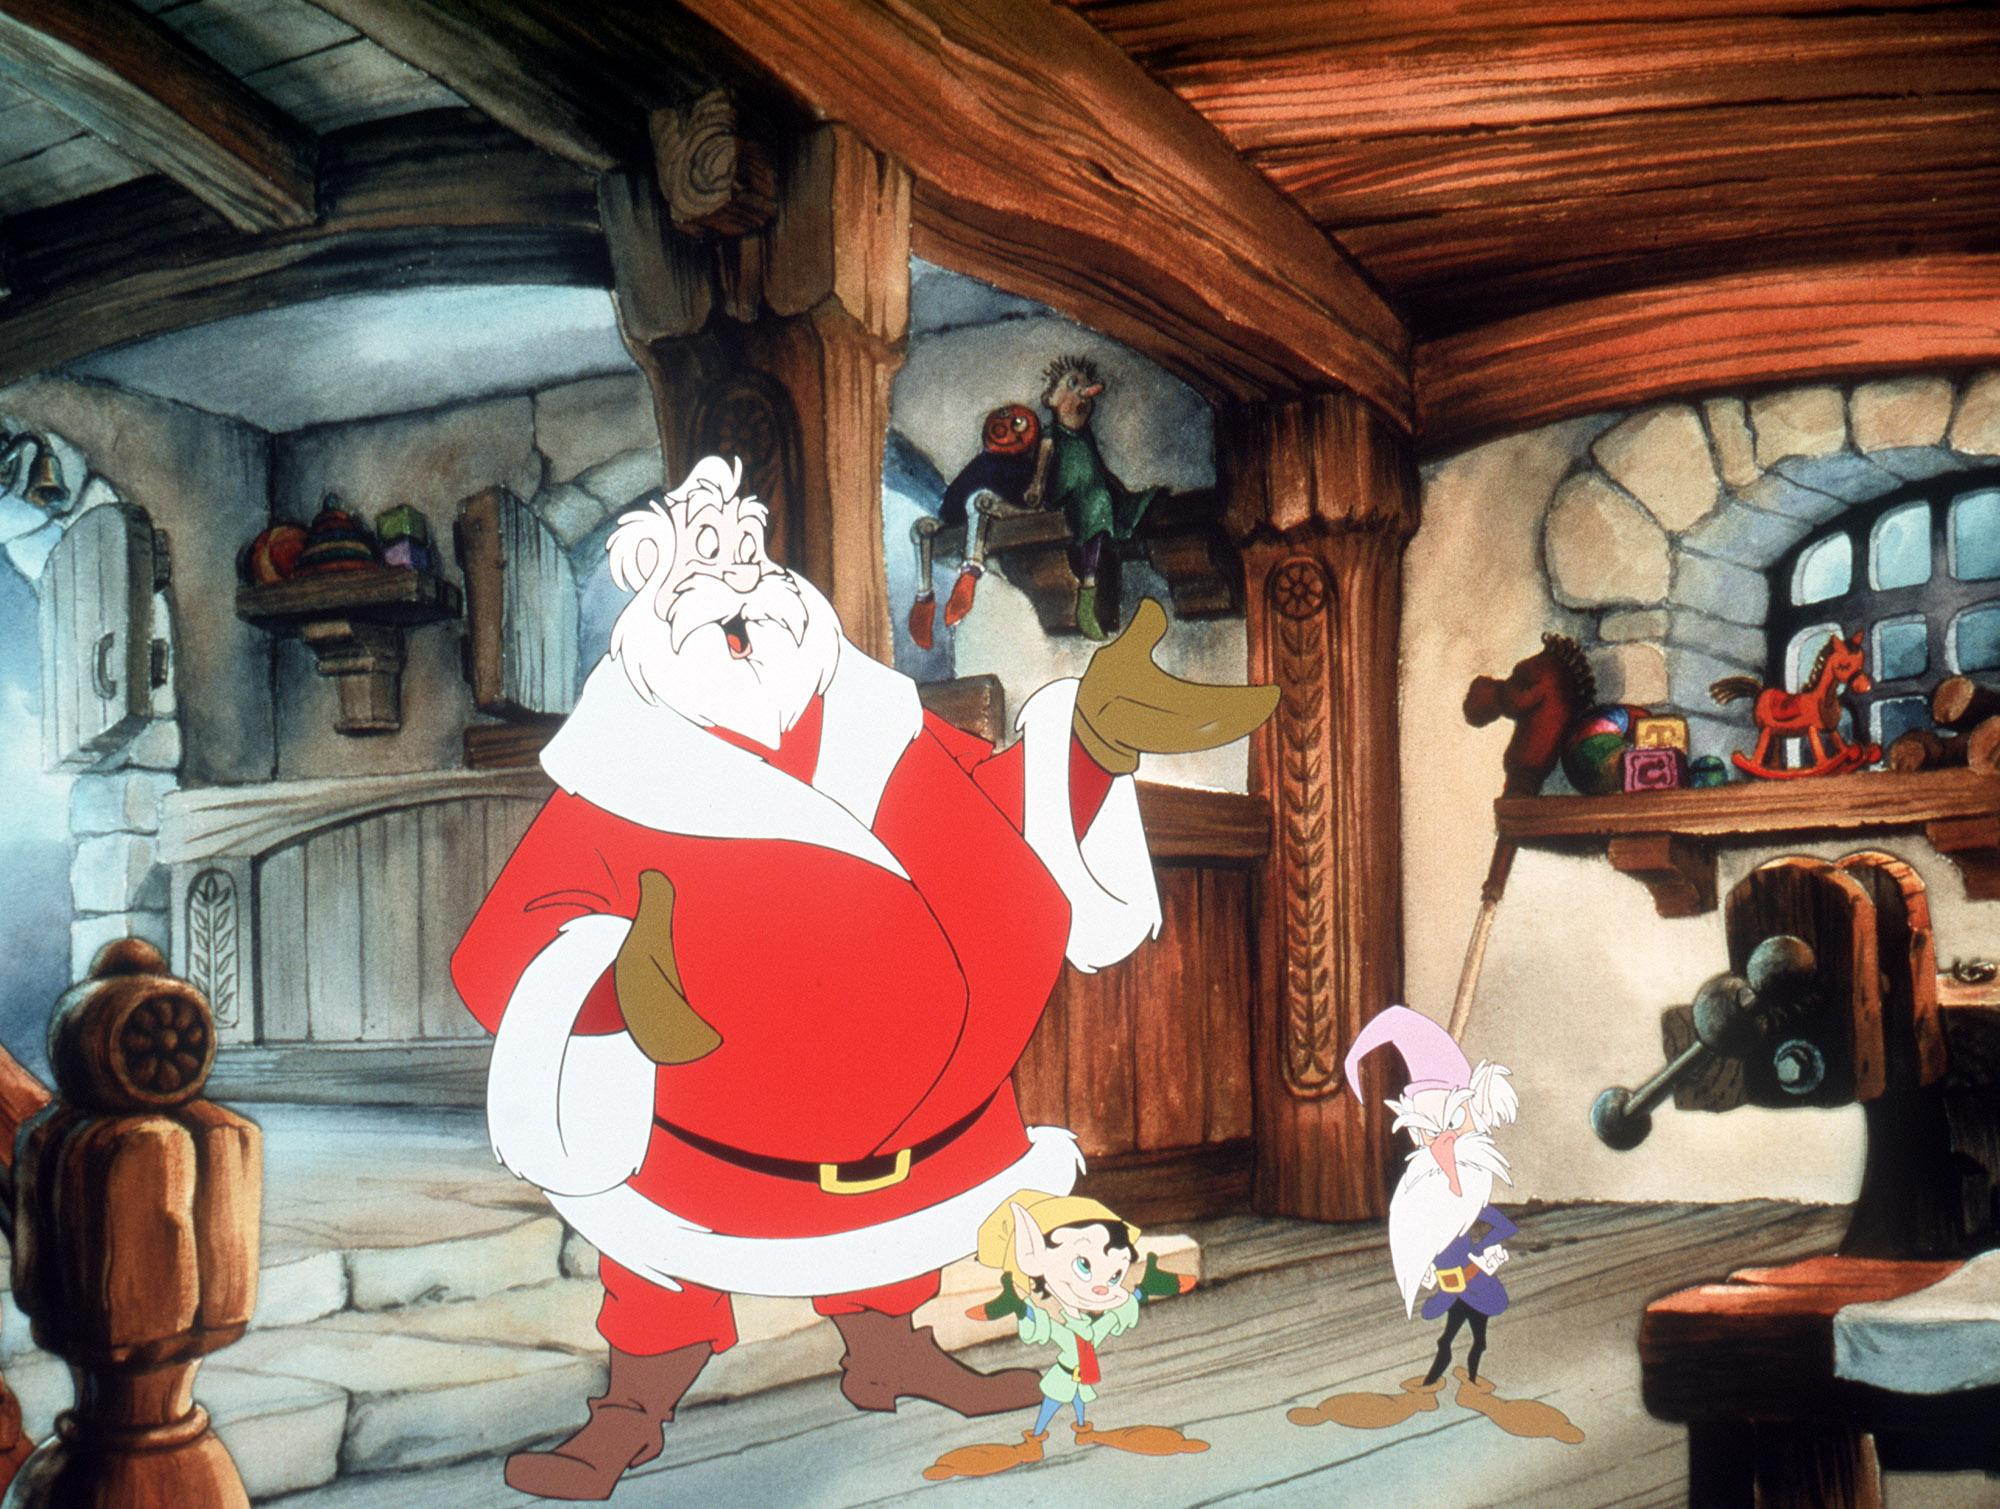 cbs to present animated musical holiday special the story of santa